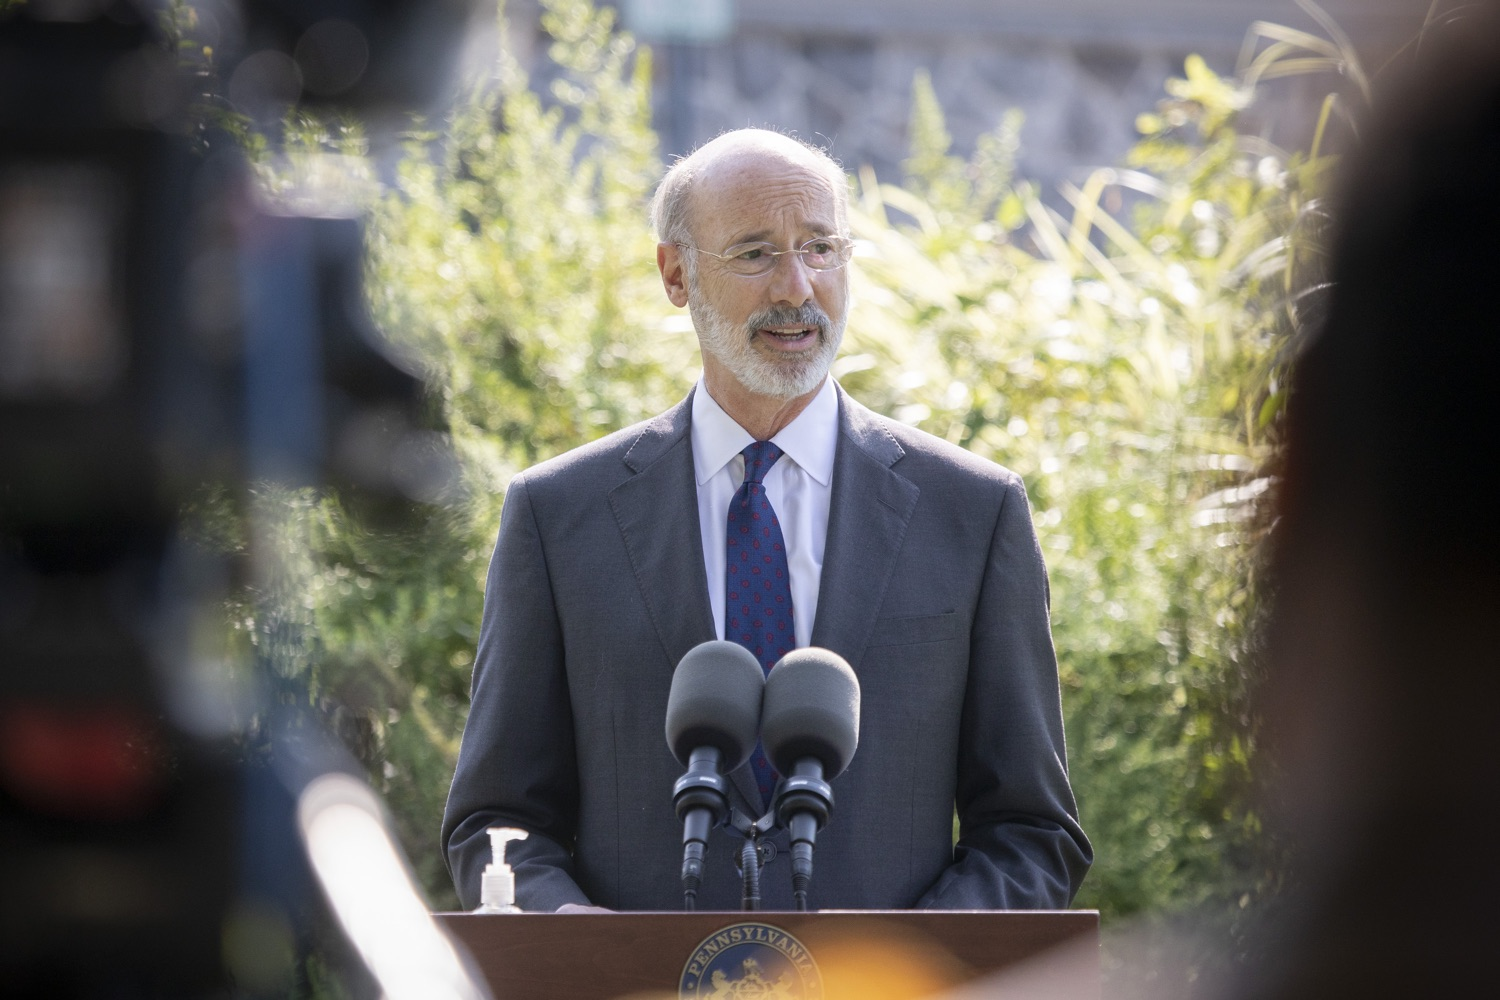 "<a href=""https://filesource.wostreaming.net/commonwealthofpa/photo/18248_gov_evictions_dz_035.jpg"" target=""_blank"">⇣ Download Photo<br></a>Pennsylvania Governor Tom Wolf speaking to the press. With rent and mortgage debt mounting for hundreds of thousands of Pennsylvanians, Governor Tom Wolf is calling on the General Assembly to fix a state relief program to prevent many families from becoming homeless and enact a moratorium on evictions and foreclosures until the end of the year. The governor was joined today by legislators and housing advocates at a press conference in Lancaster County. Harrisburg, PA  Sept. 8, 2020"